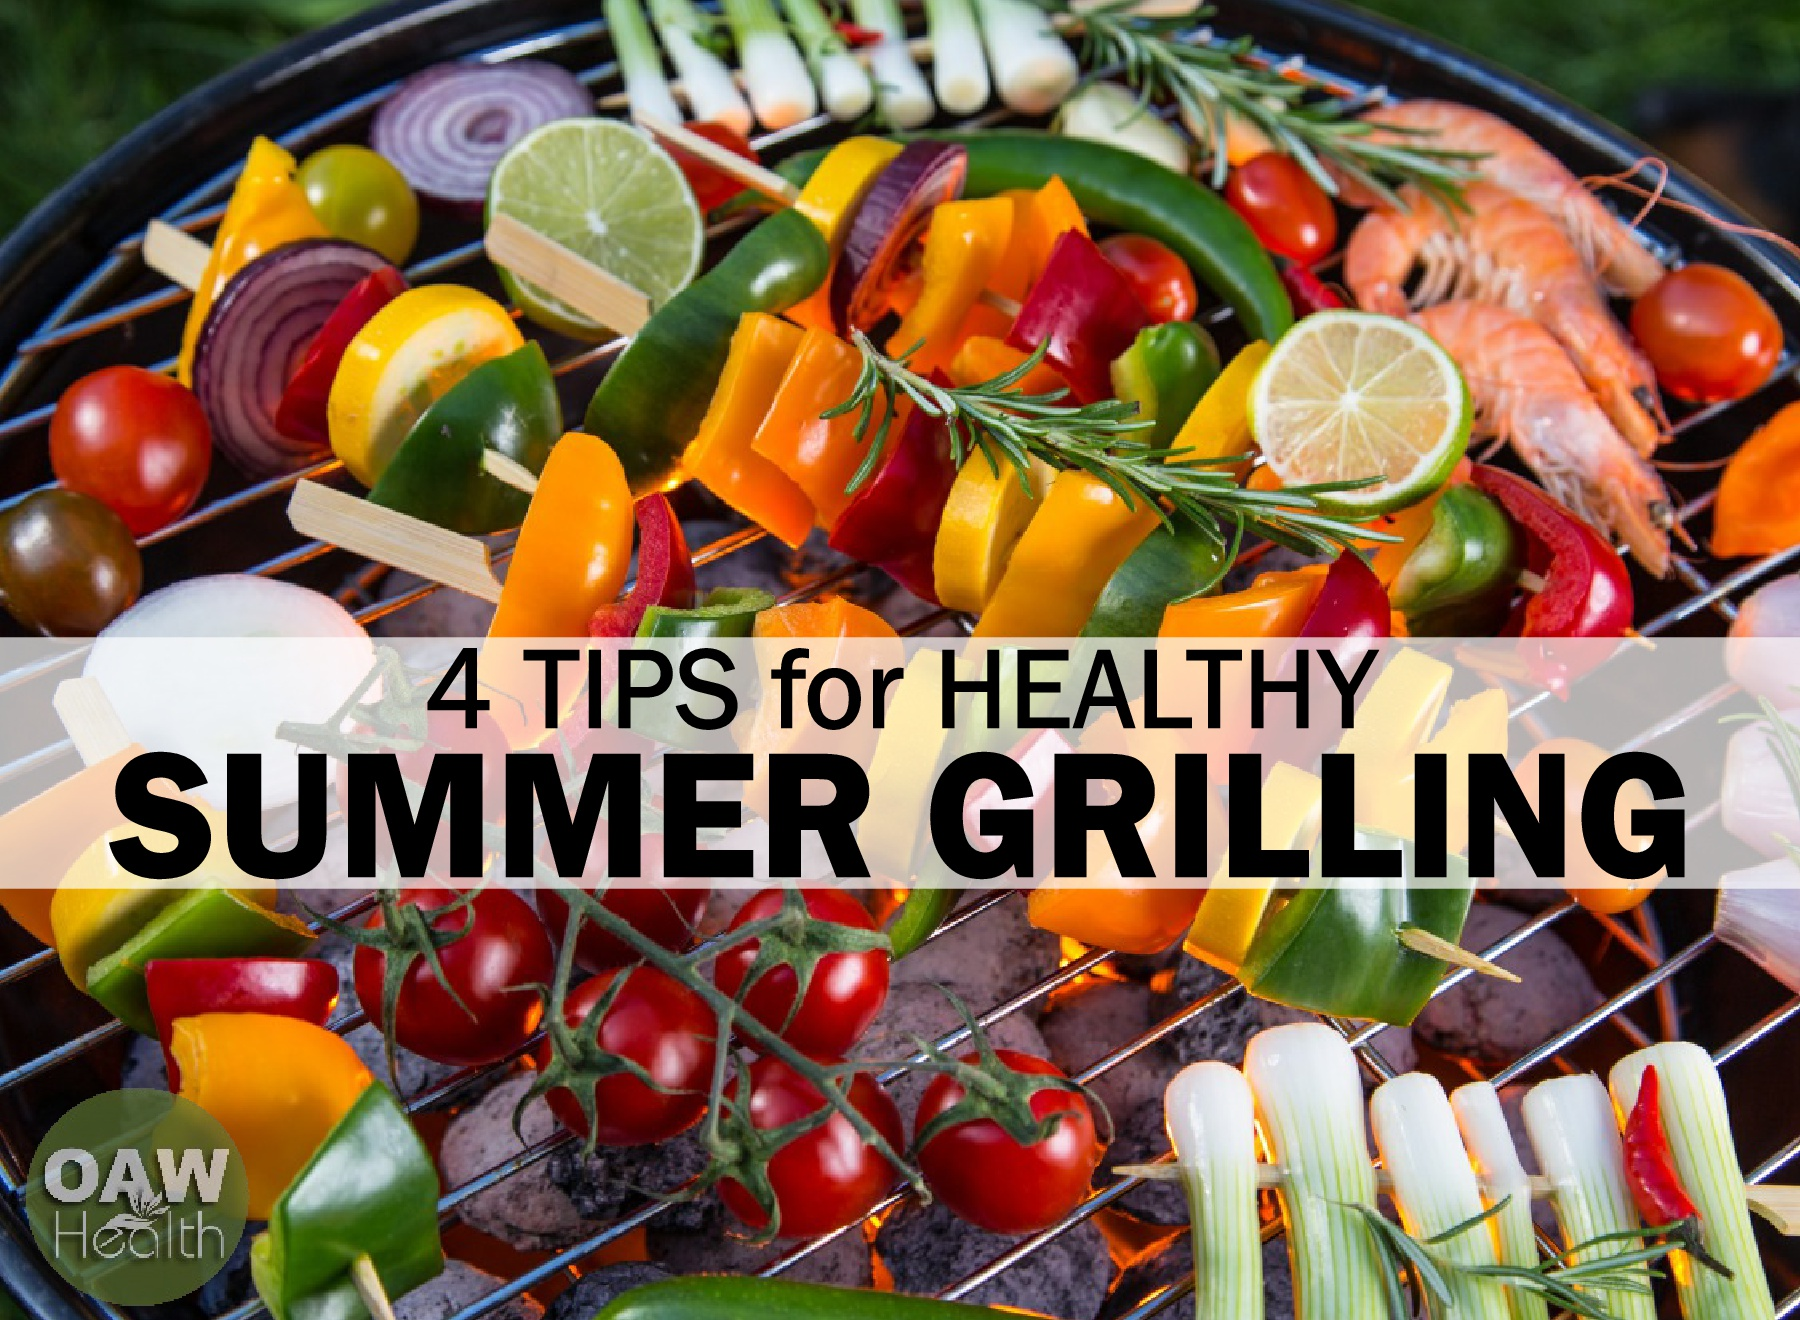 4 Tips for Healthy Summer Grilling